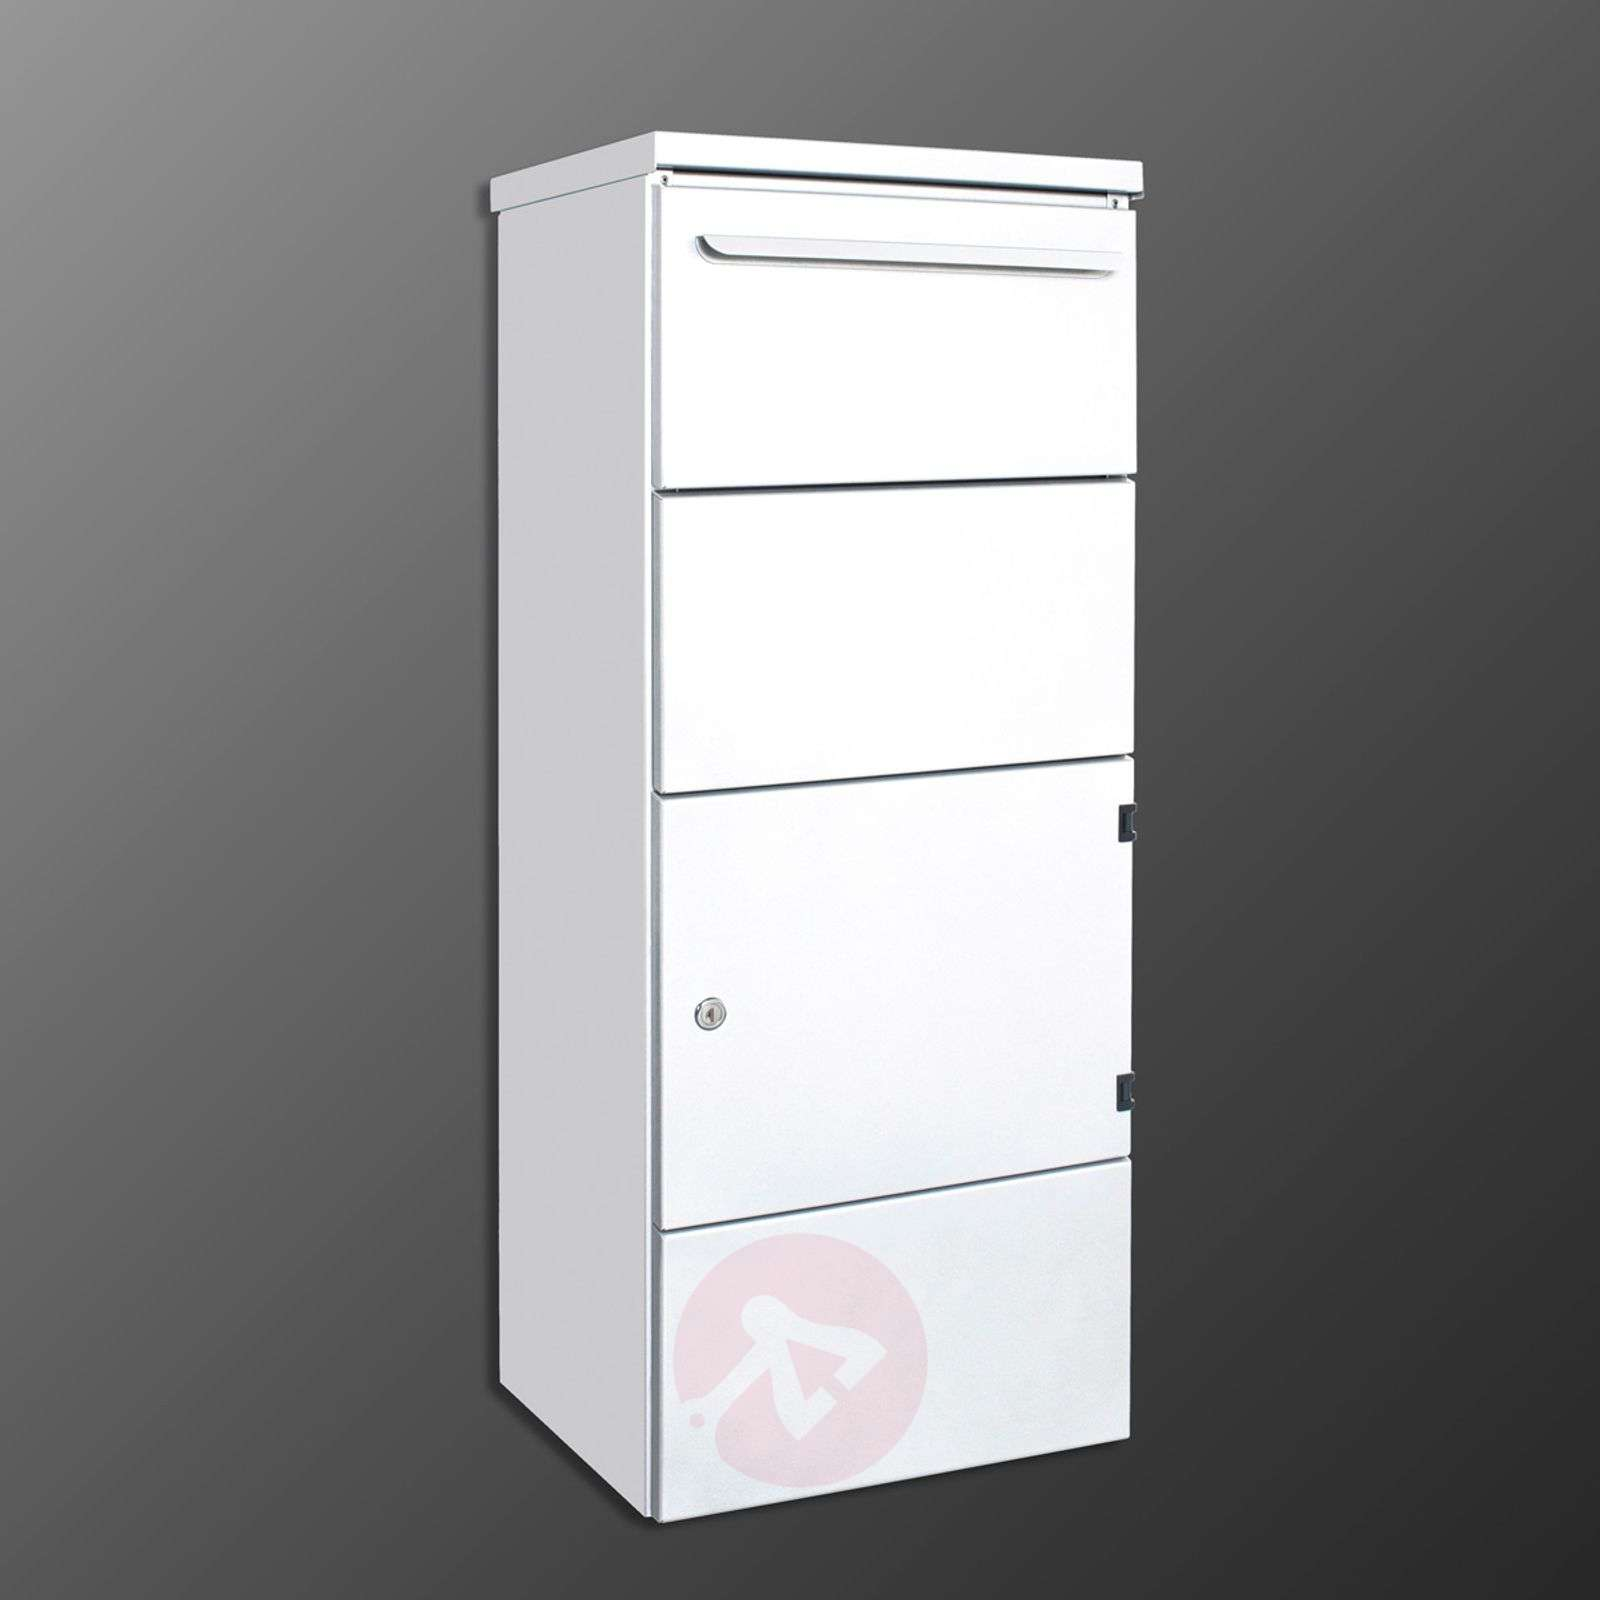 In white free-standing letterbox Toronto-5540027-01